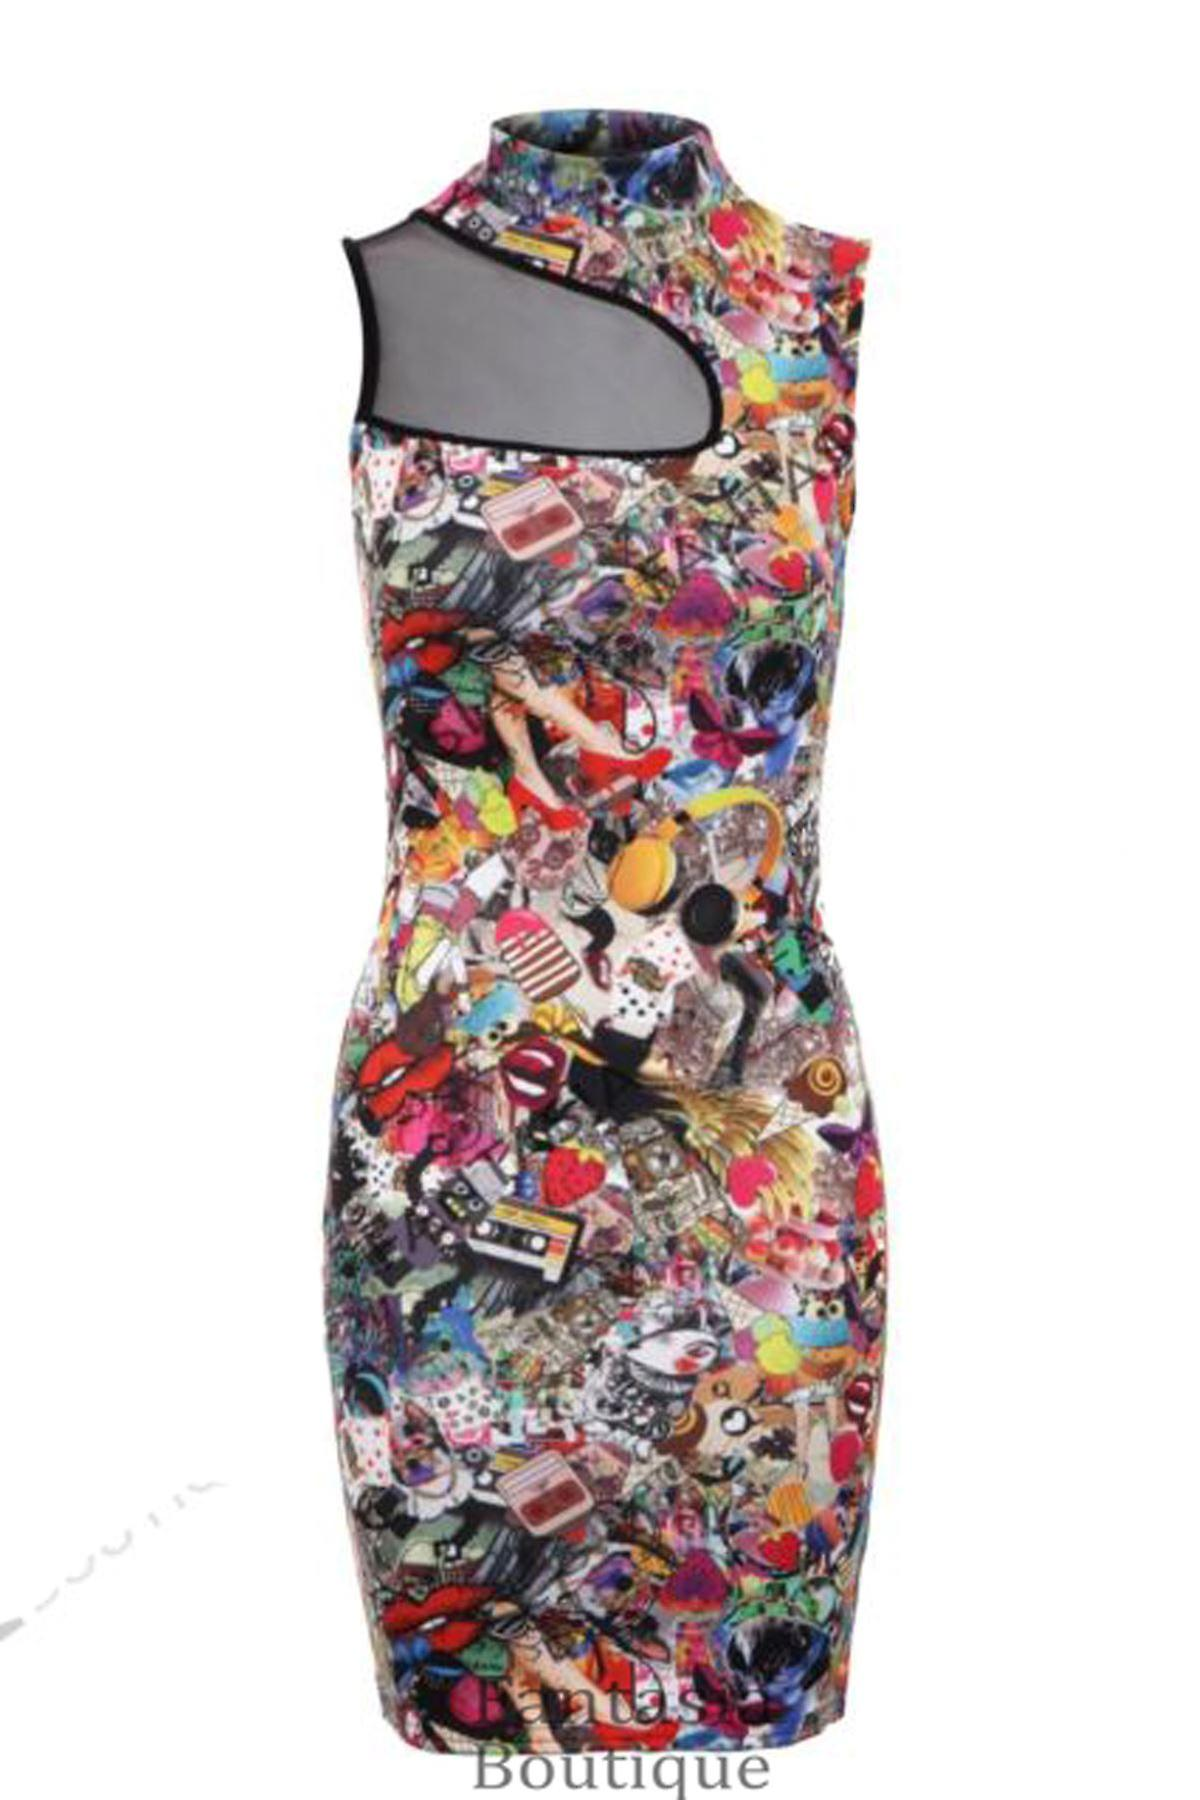 Ladies Funky Print Chest Mesh Slimming Effect Womens Bodycon Dress